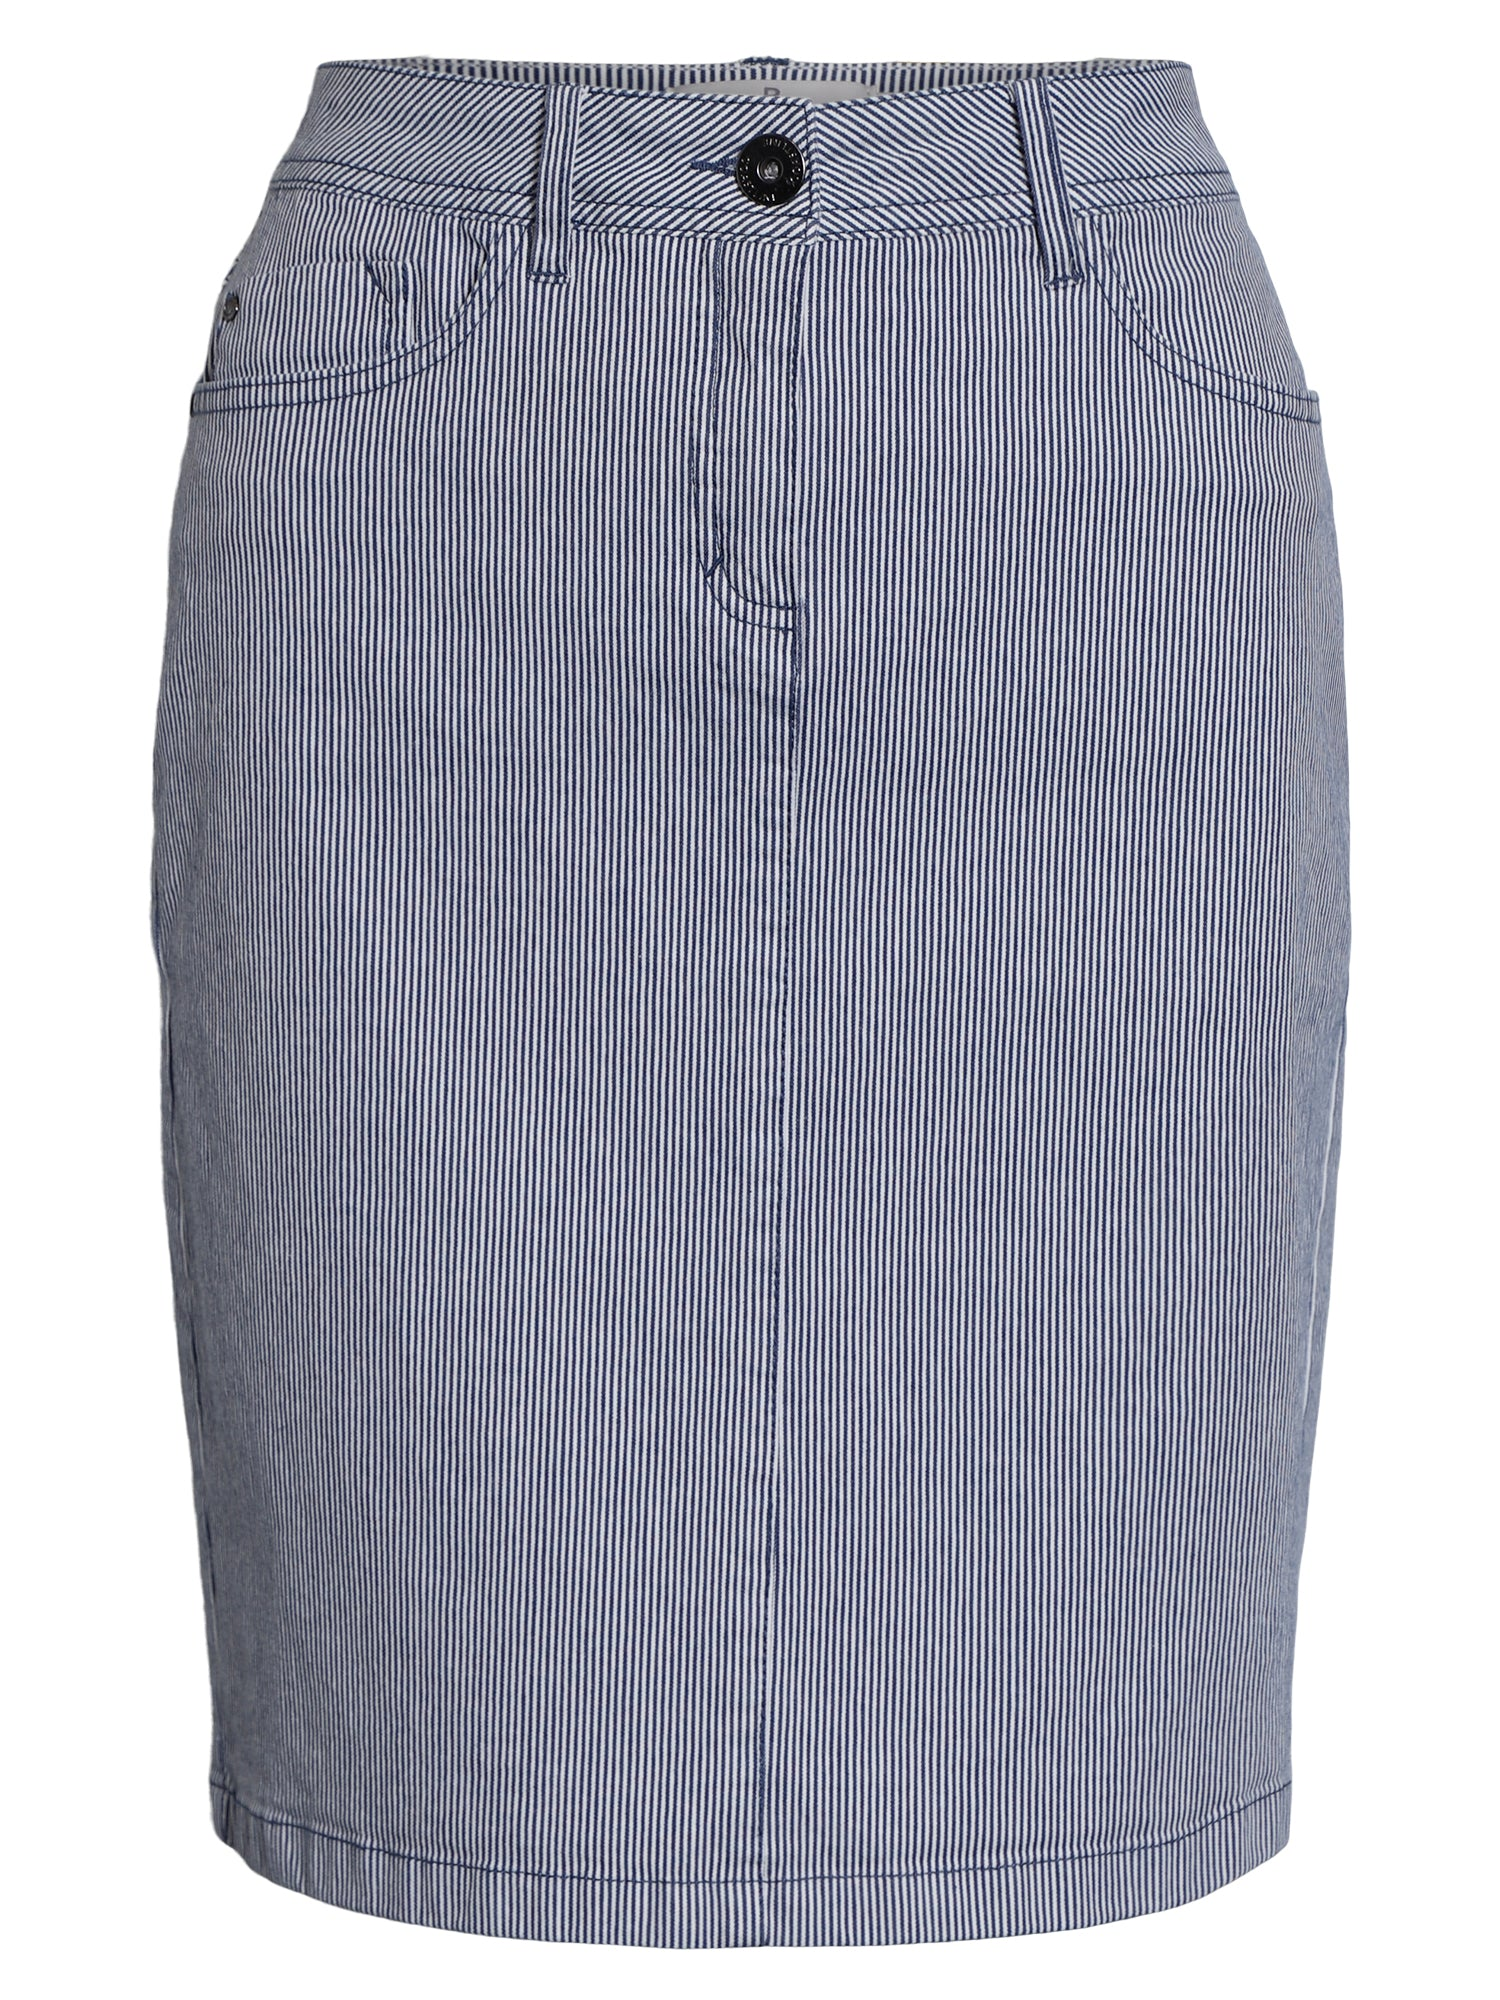 Image of   Stribet nederdel - Denim light blue